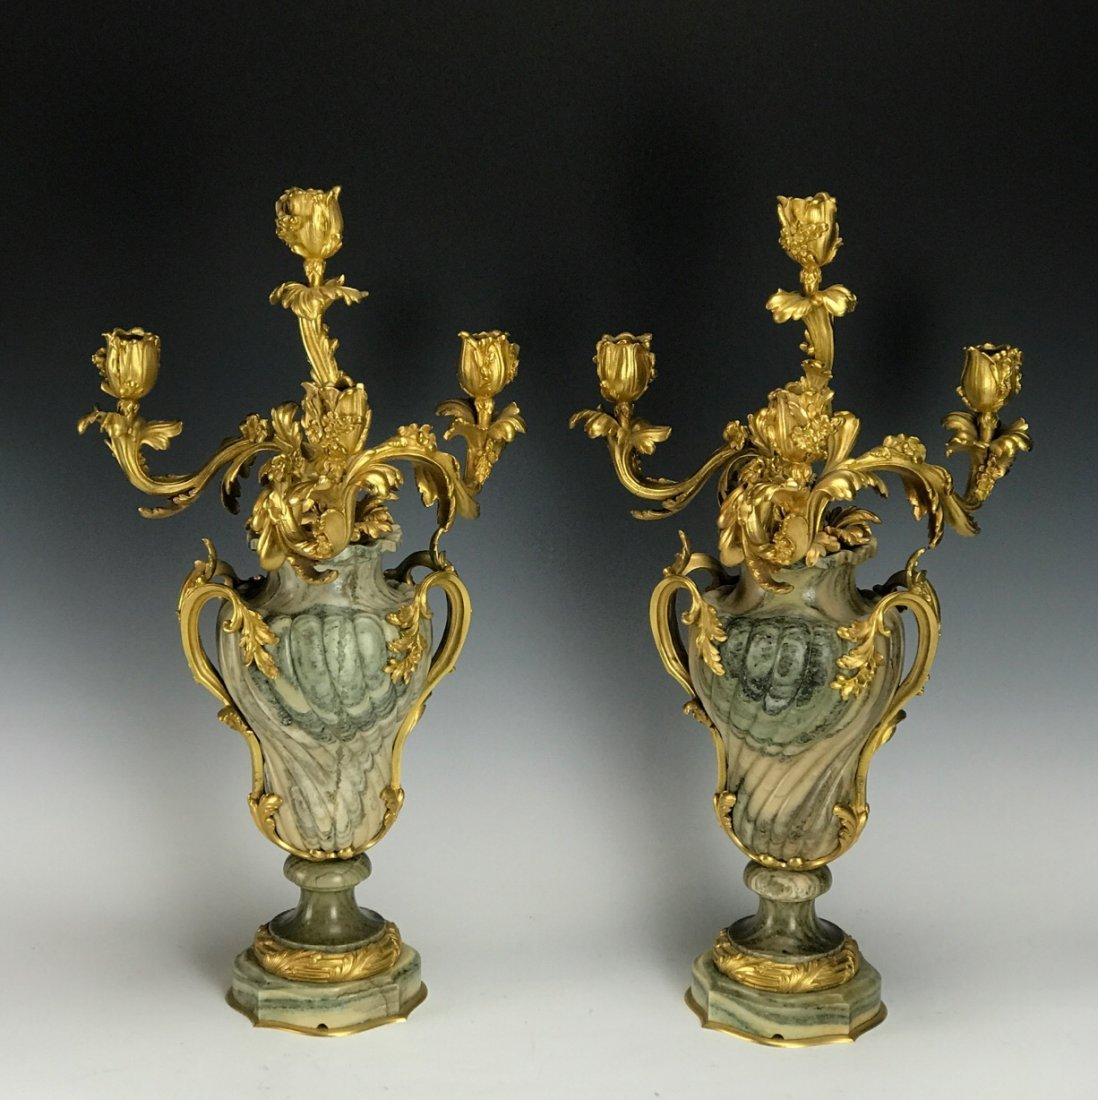 A MAGNIFICENT PAIR OF DORE BRONZE & MARBLE CANDELABRA